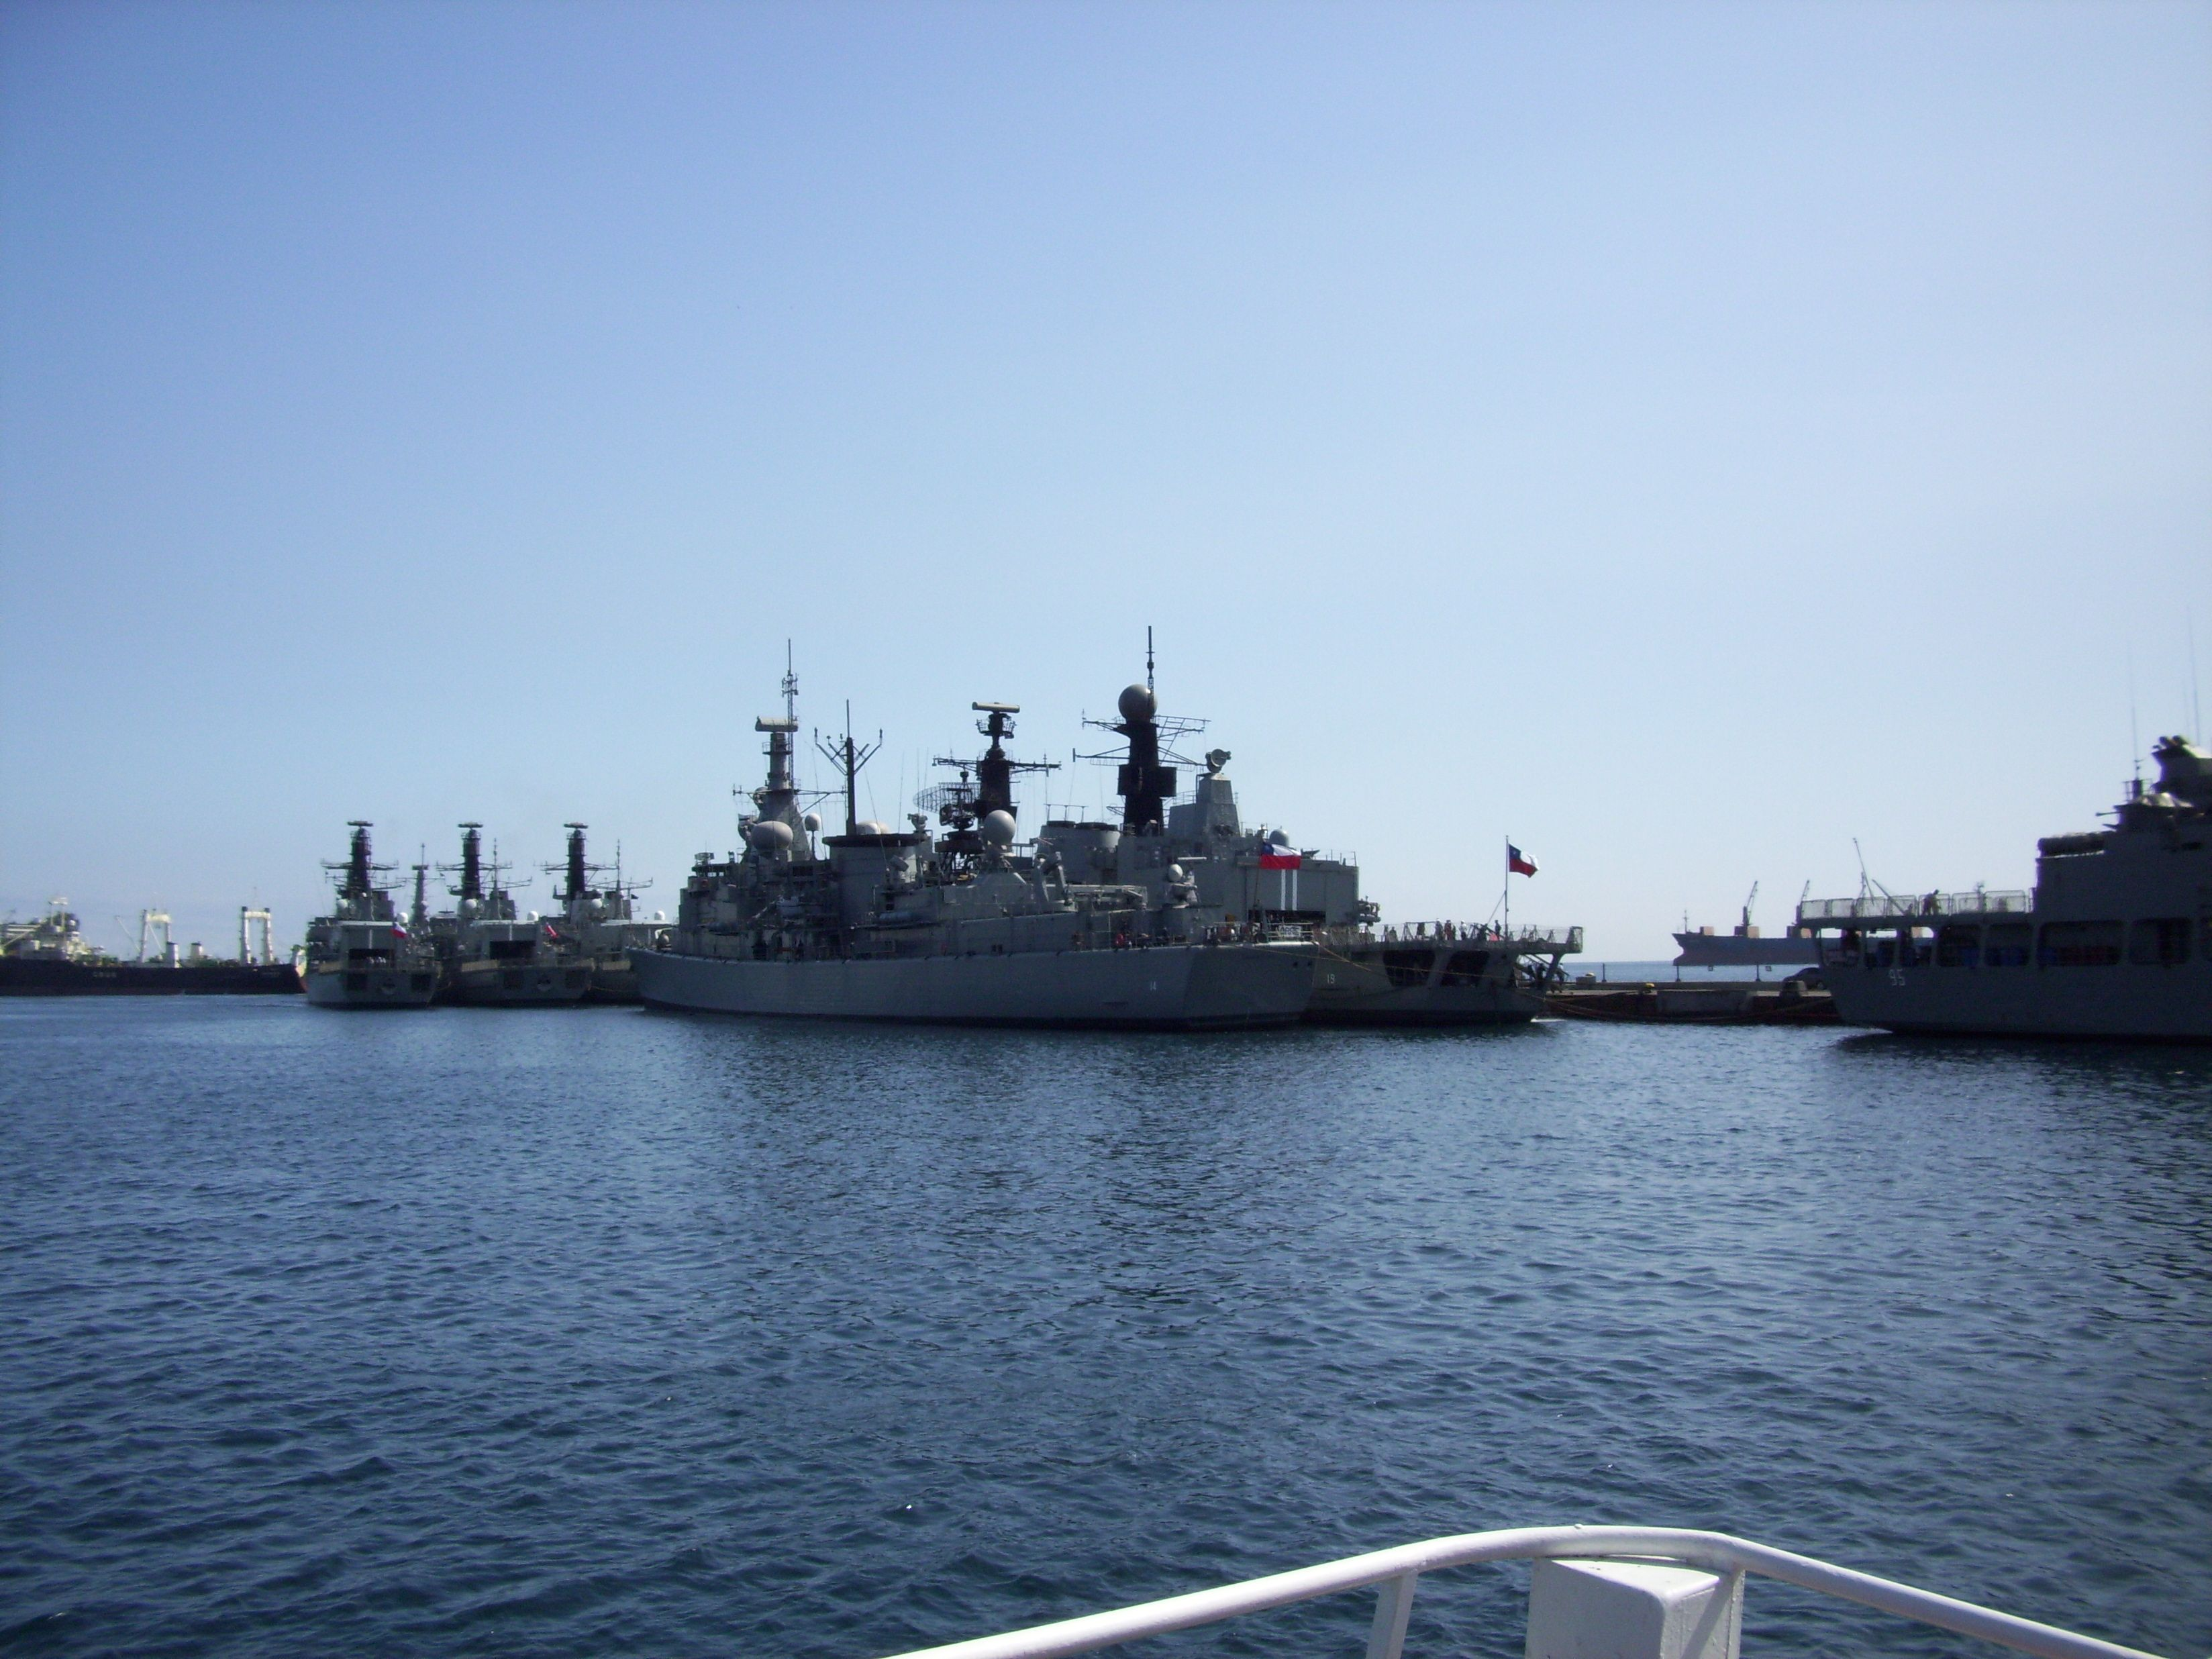 Chilean Naval Ships Off The Coast Of Valparaiso Chile Boat Outdoor Sydney Opera House